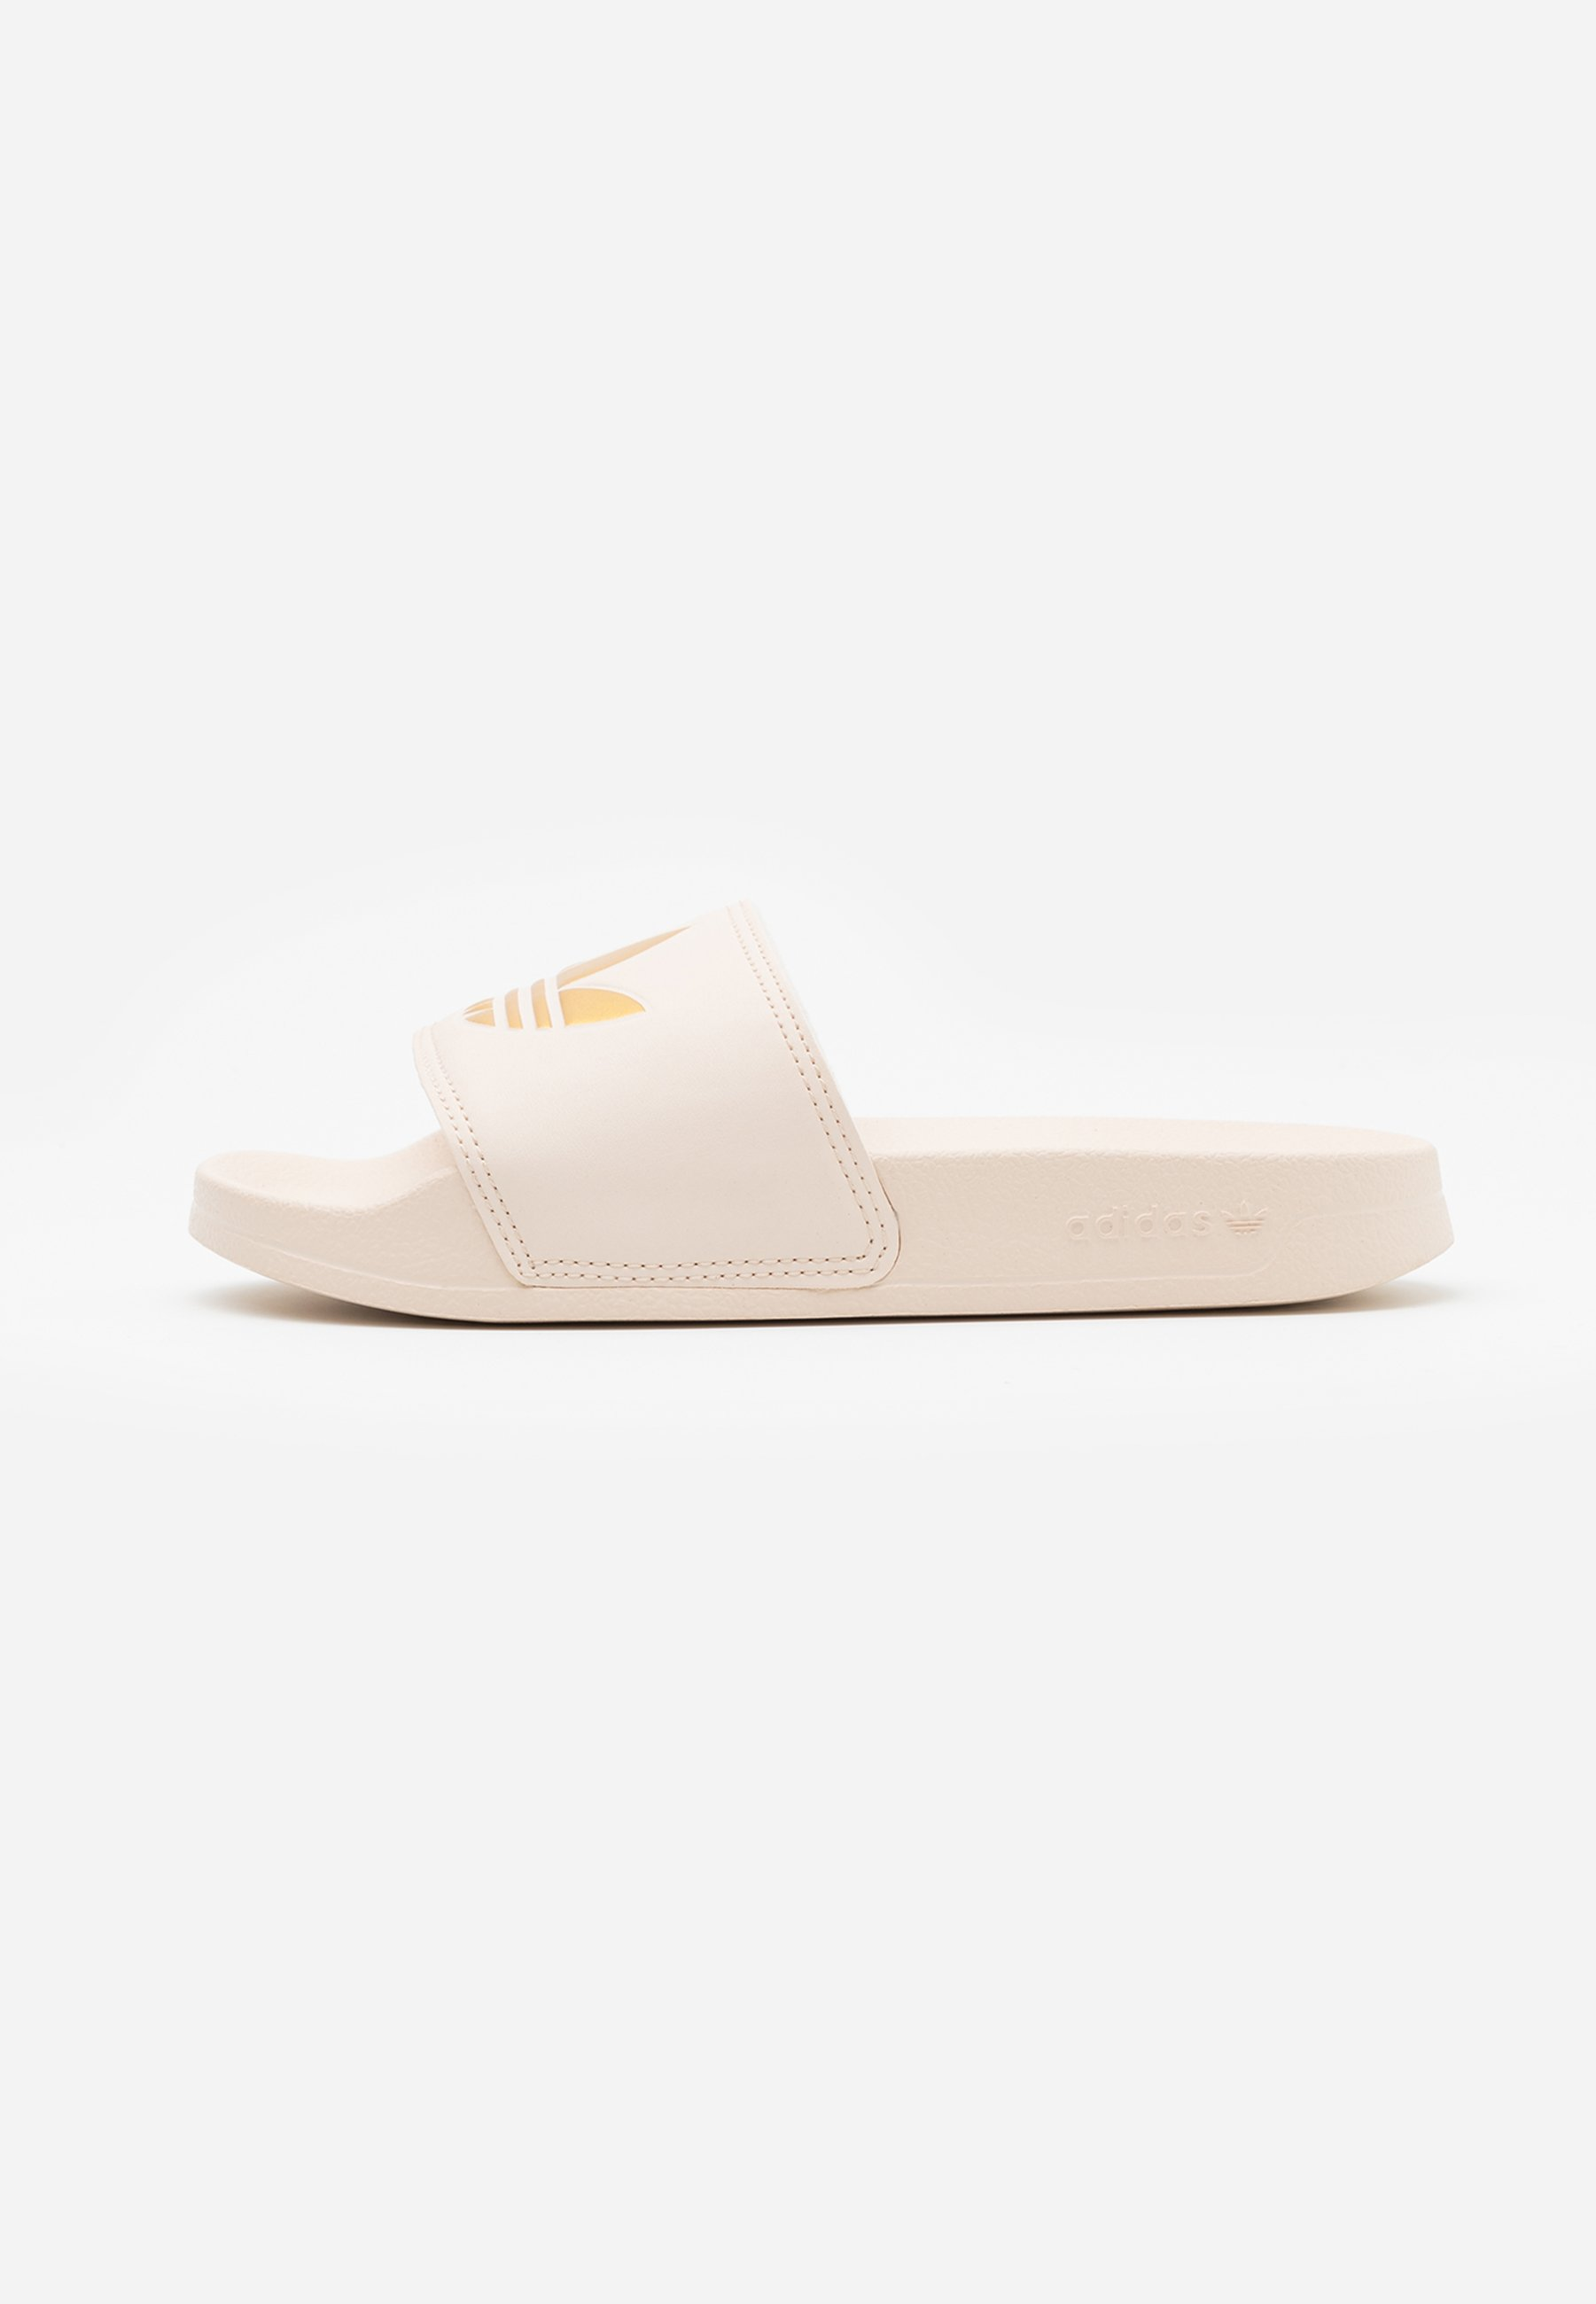 Adidas Originals Adilette Sports Inspired Slides - Klapki Linen/gold Metallic